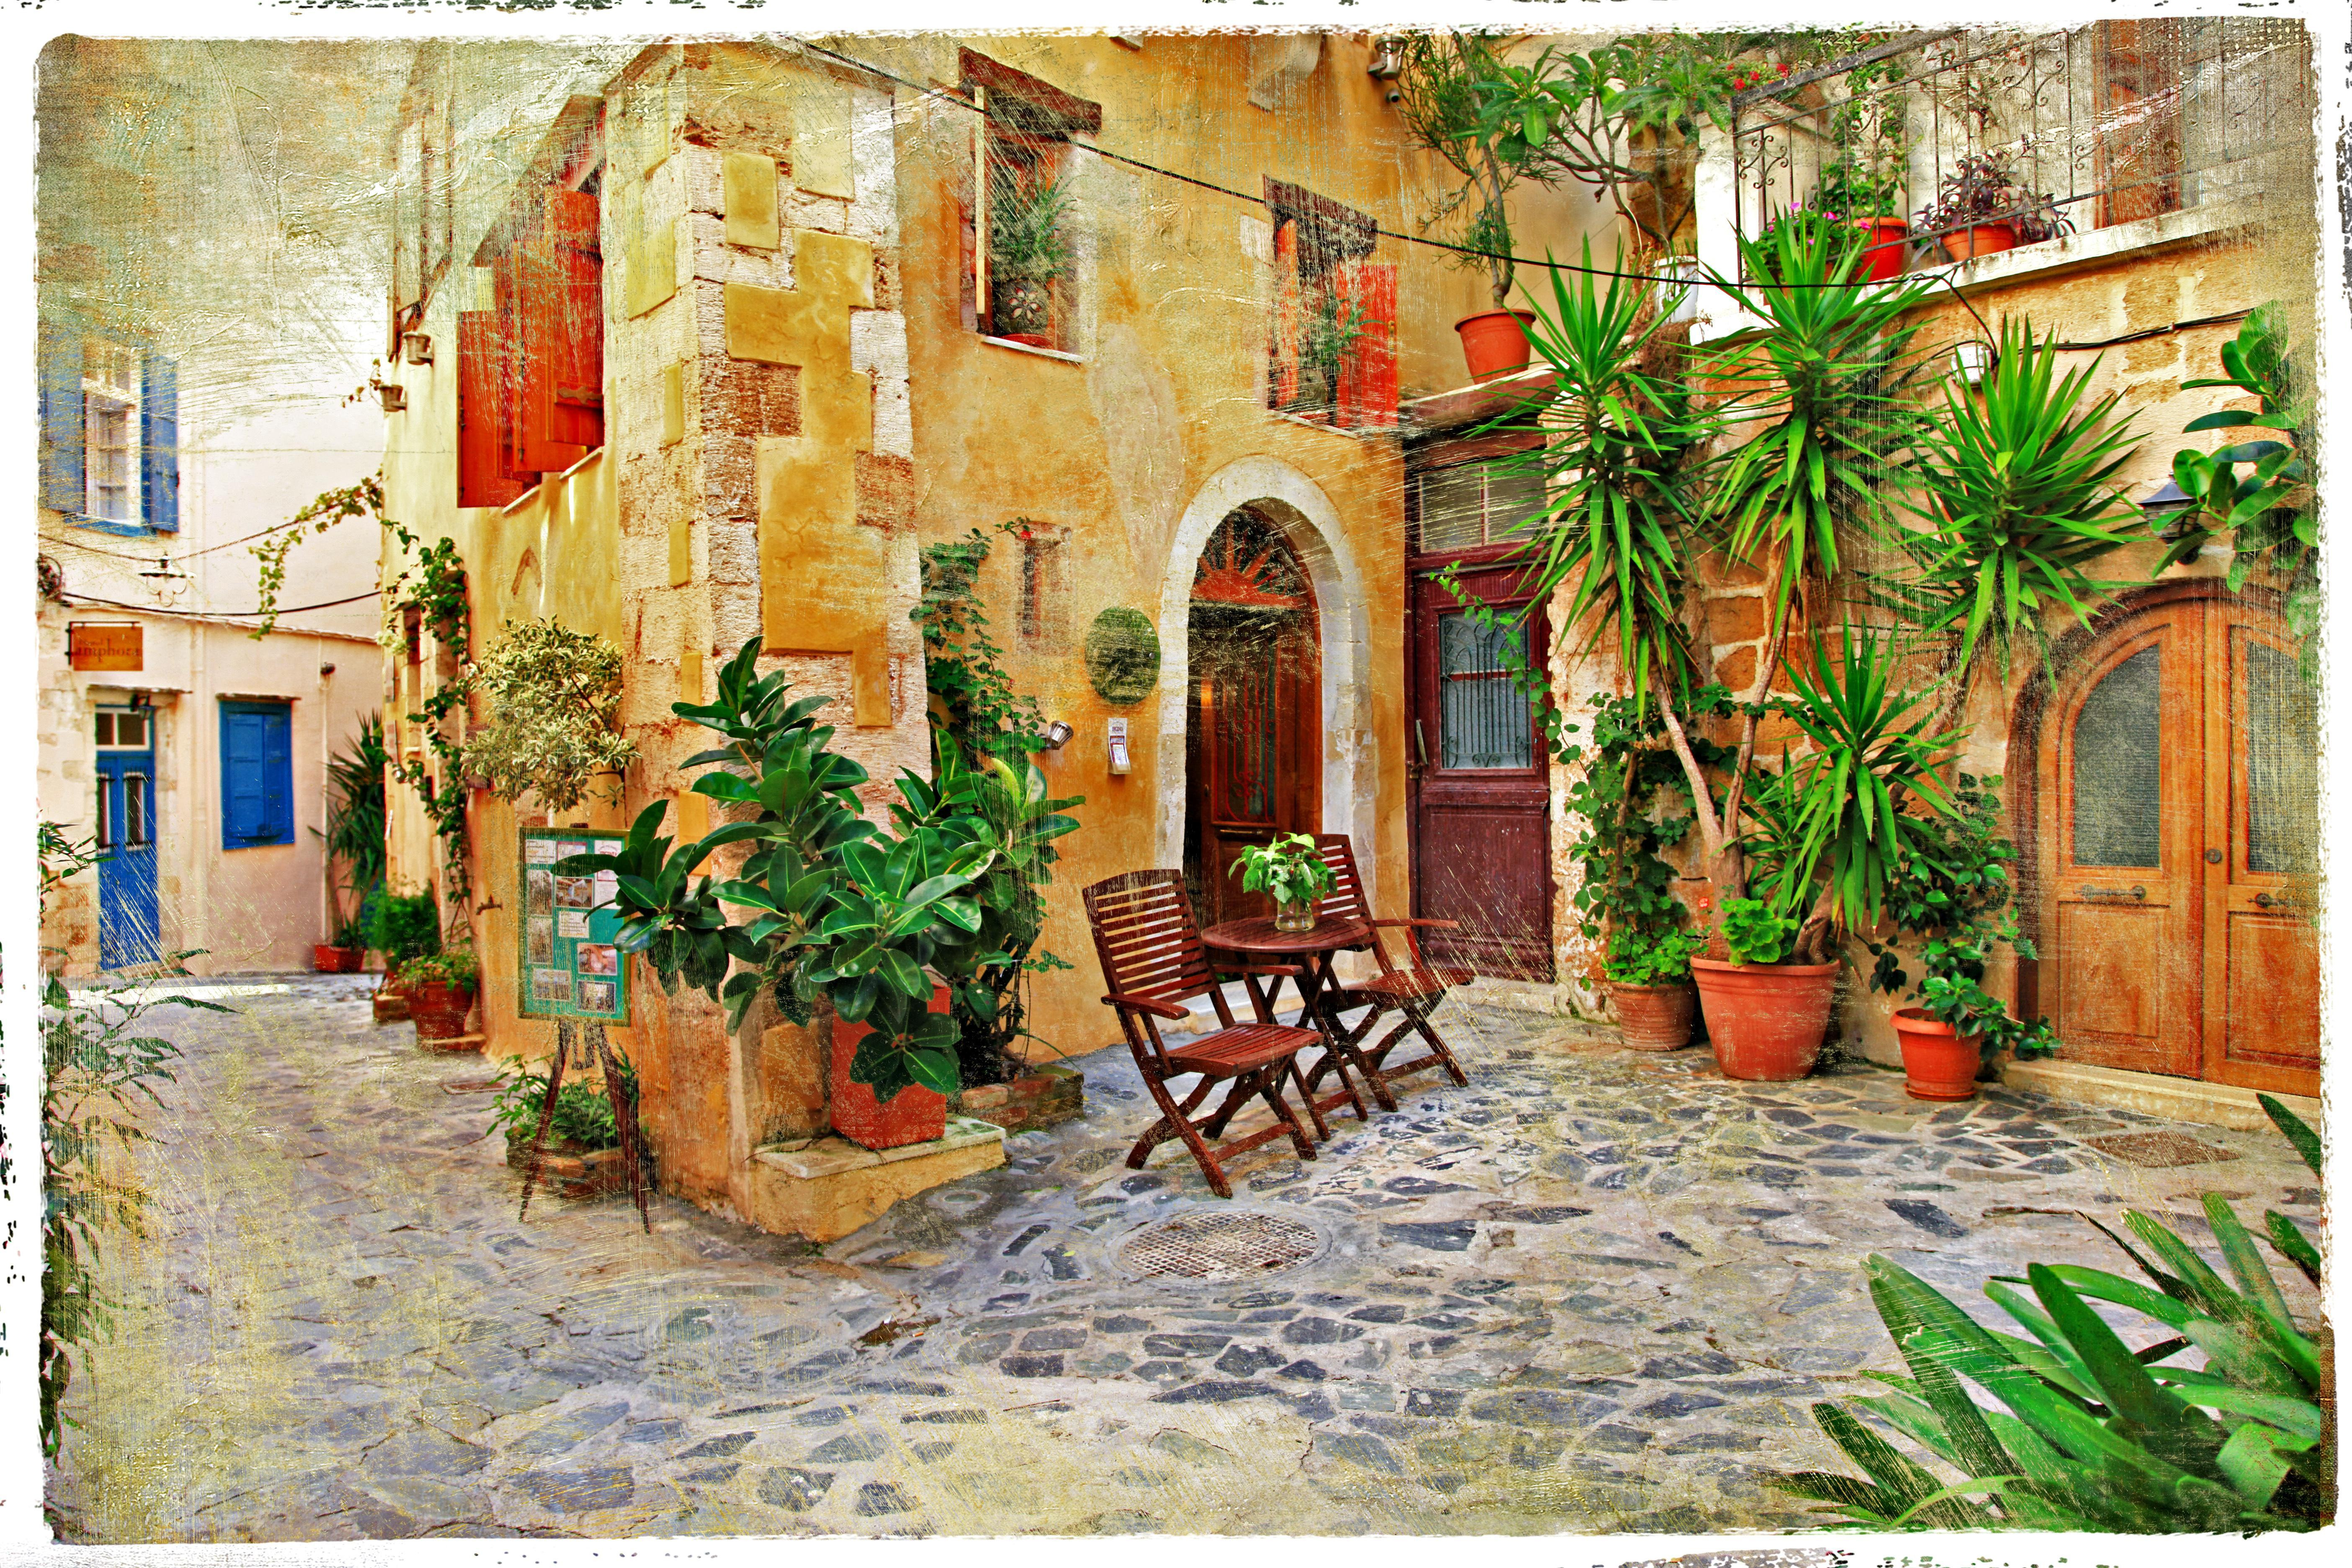 How to Spend 2 Days in Chania